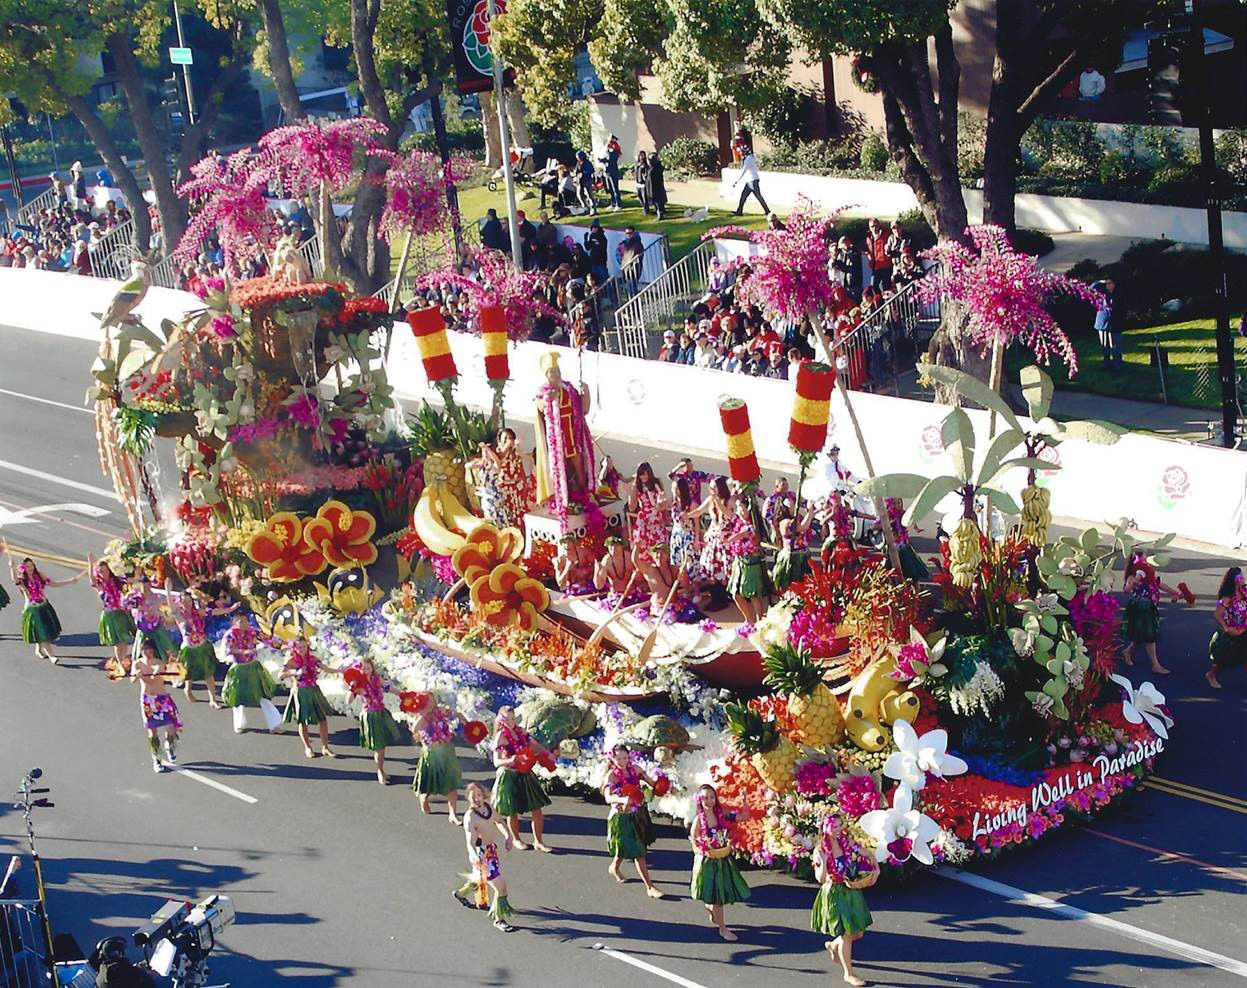 "Dole's debut in the Rose Parade, ""Living Well in Paradise"" represented the tropical paradise of Hawaii, where Dole was founded more than 100 years ago. Dole is committed to keeping paradise alive."